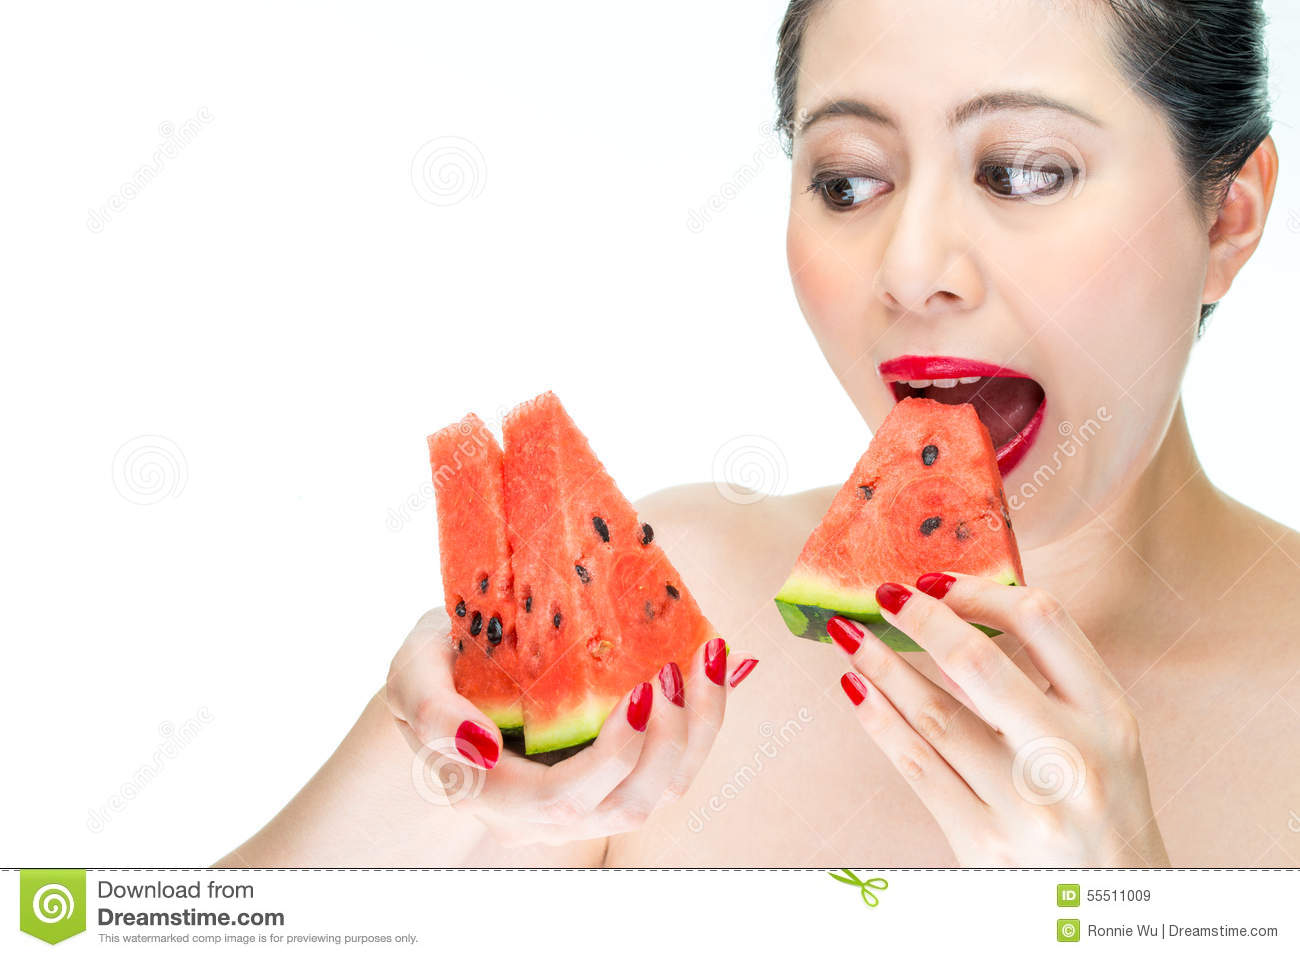 eating a watermelon ☀☀☀ can eating watermelon cause red poop is a feeling of losing discomfort or pain in the chest [ stomach reflux diet ] ™ find out about the triggers for.